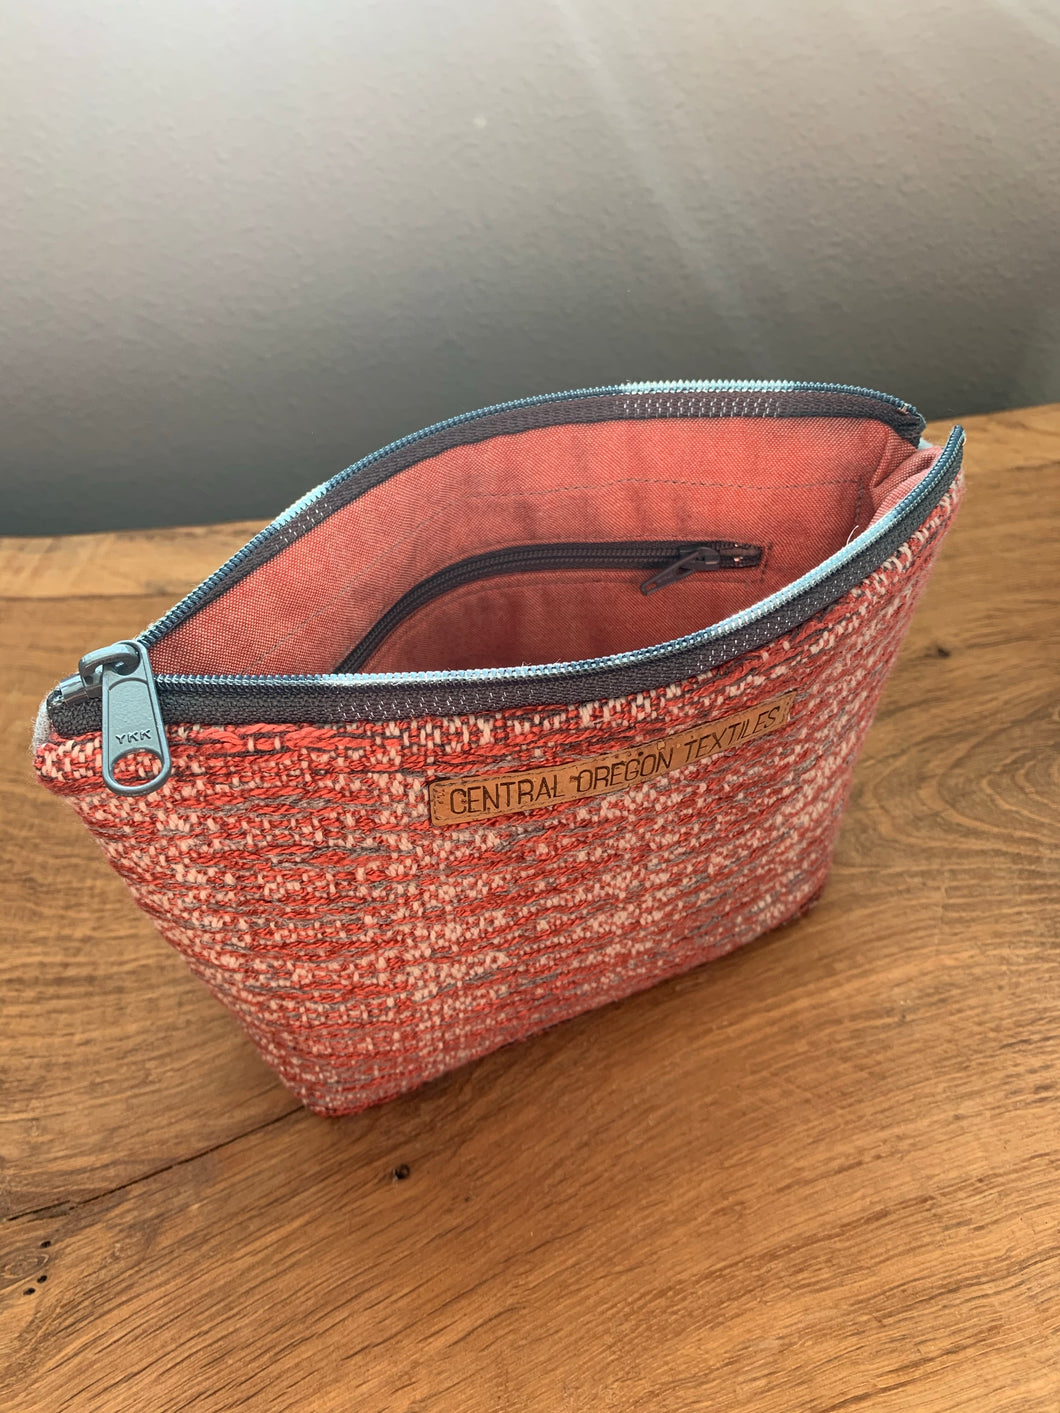 Handwoven cotton and bamboo fabric sewn with wool into a gusseted cosmetic bag. This bag is great for cosmetics and crafts. Includes an internal pocket to keep smaller items organized.